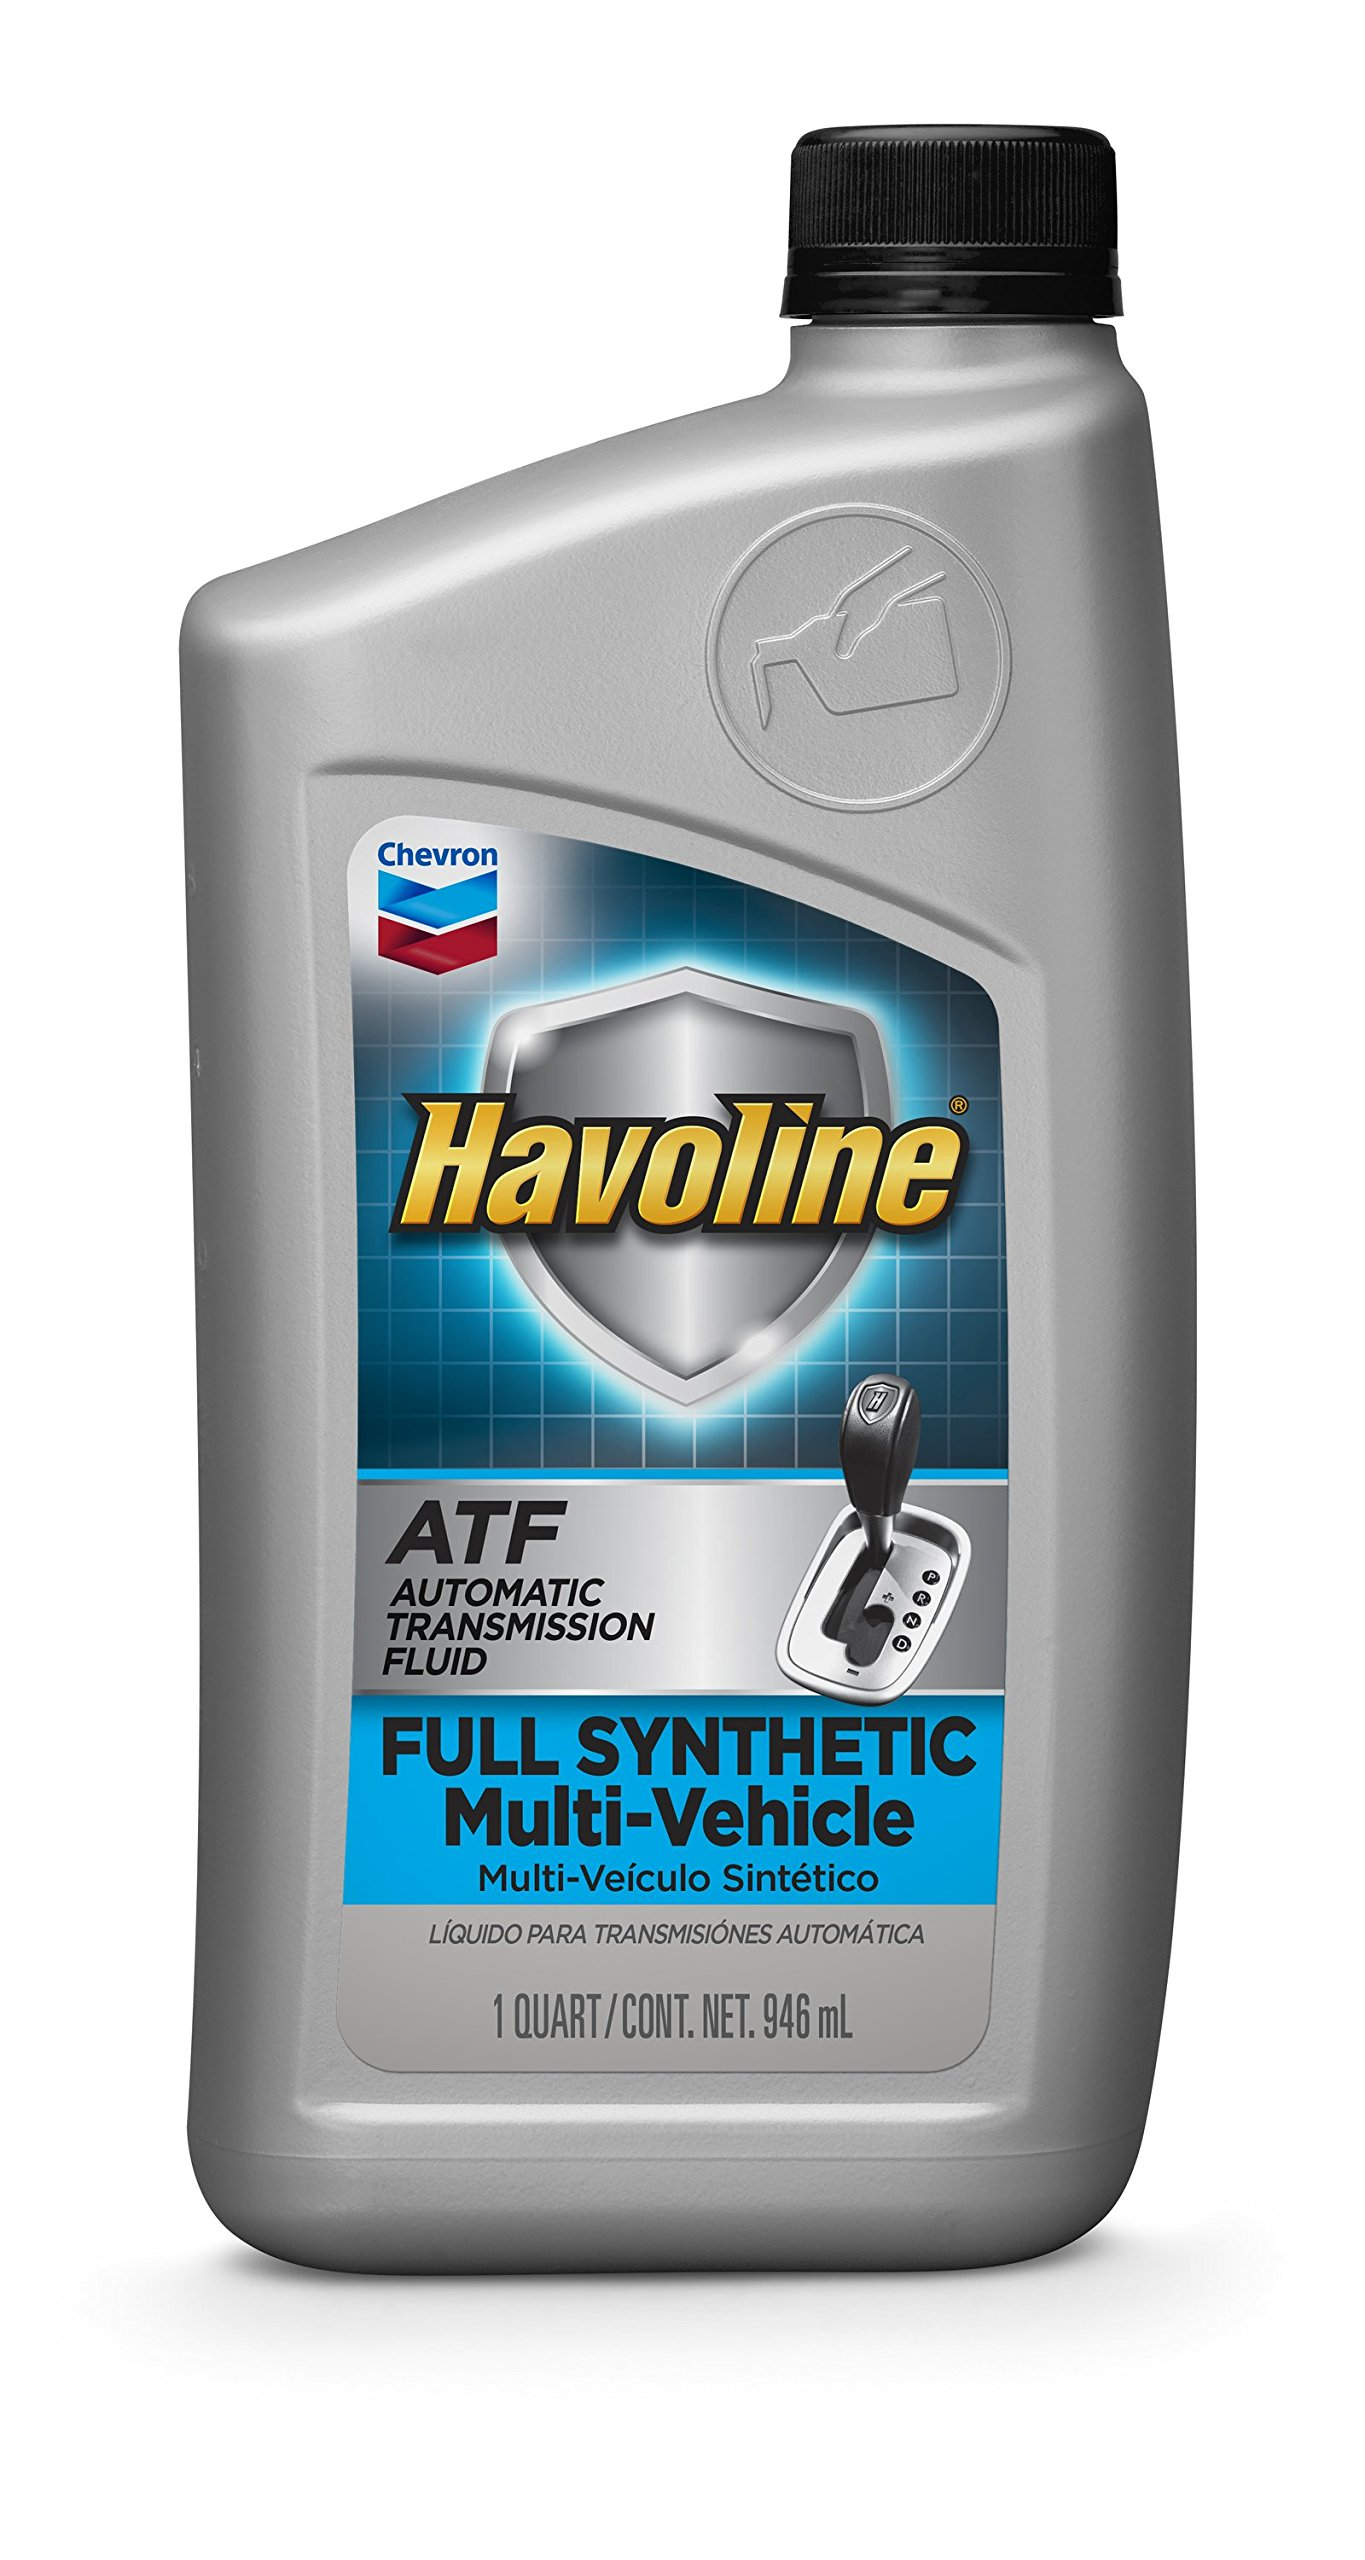 Havoline 226536727 Full Synthetic Multi-Vehicle ATF, 1 quart, 1 Pack by Havoline